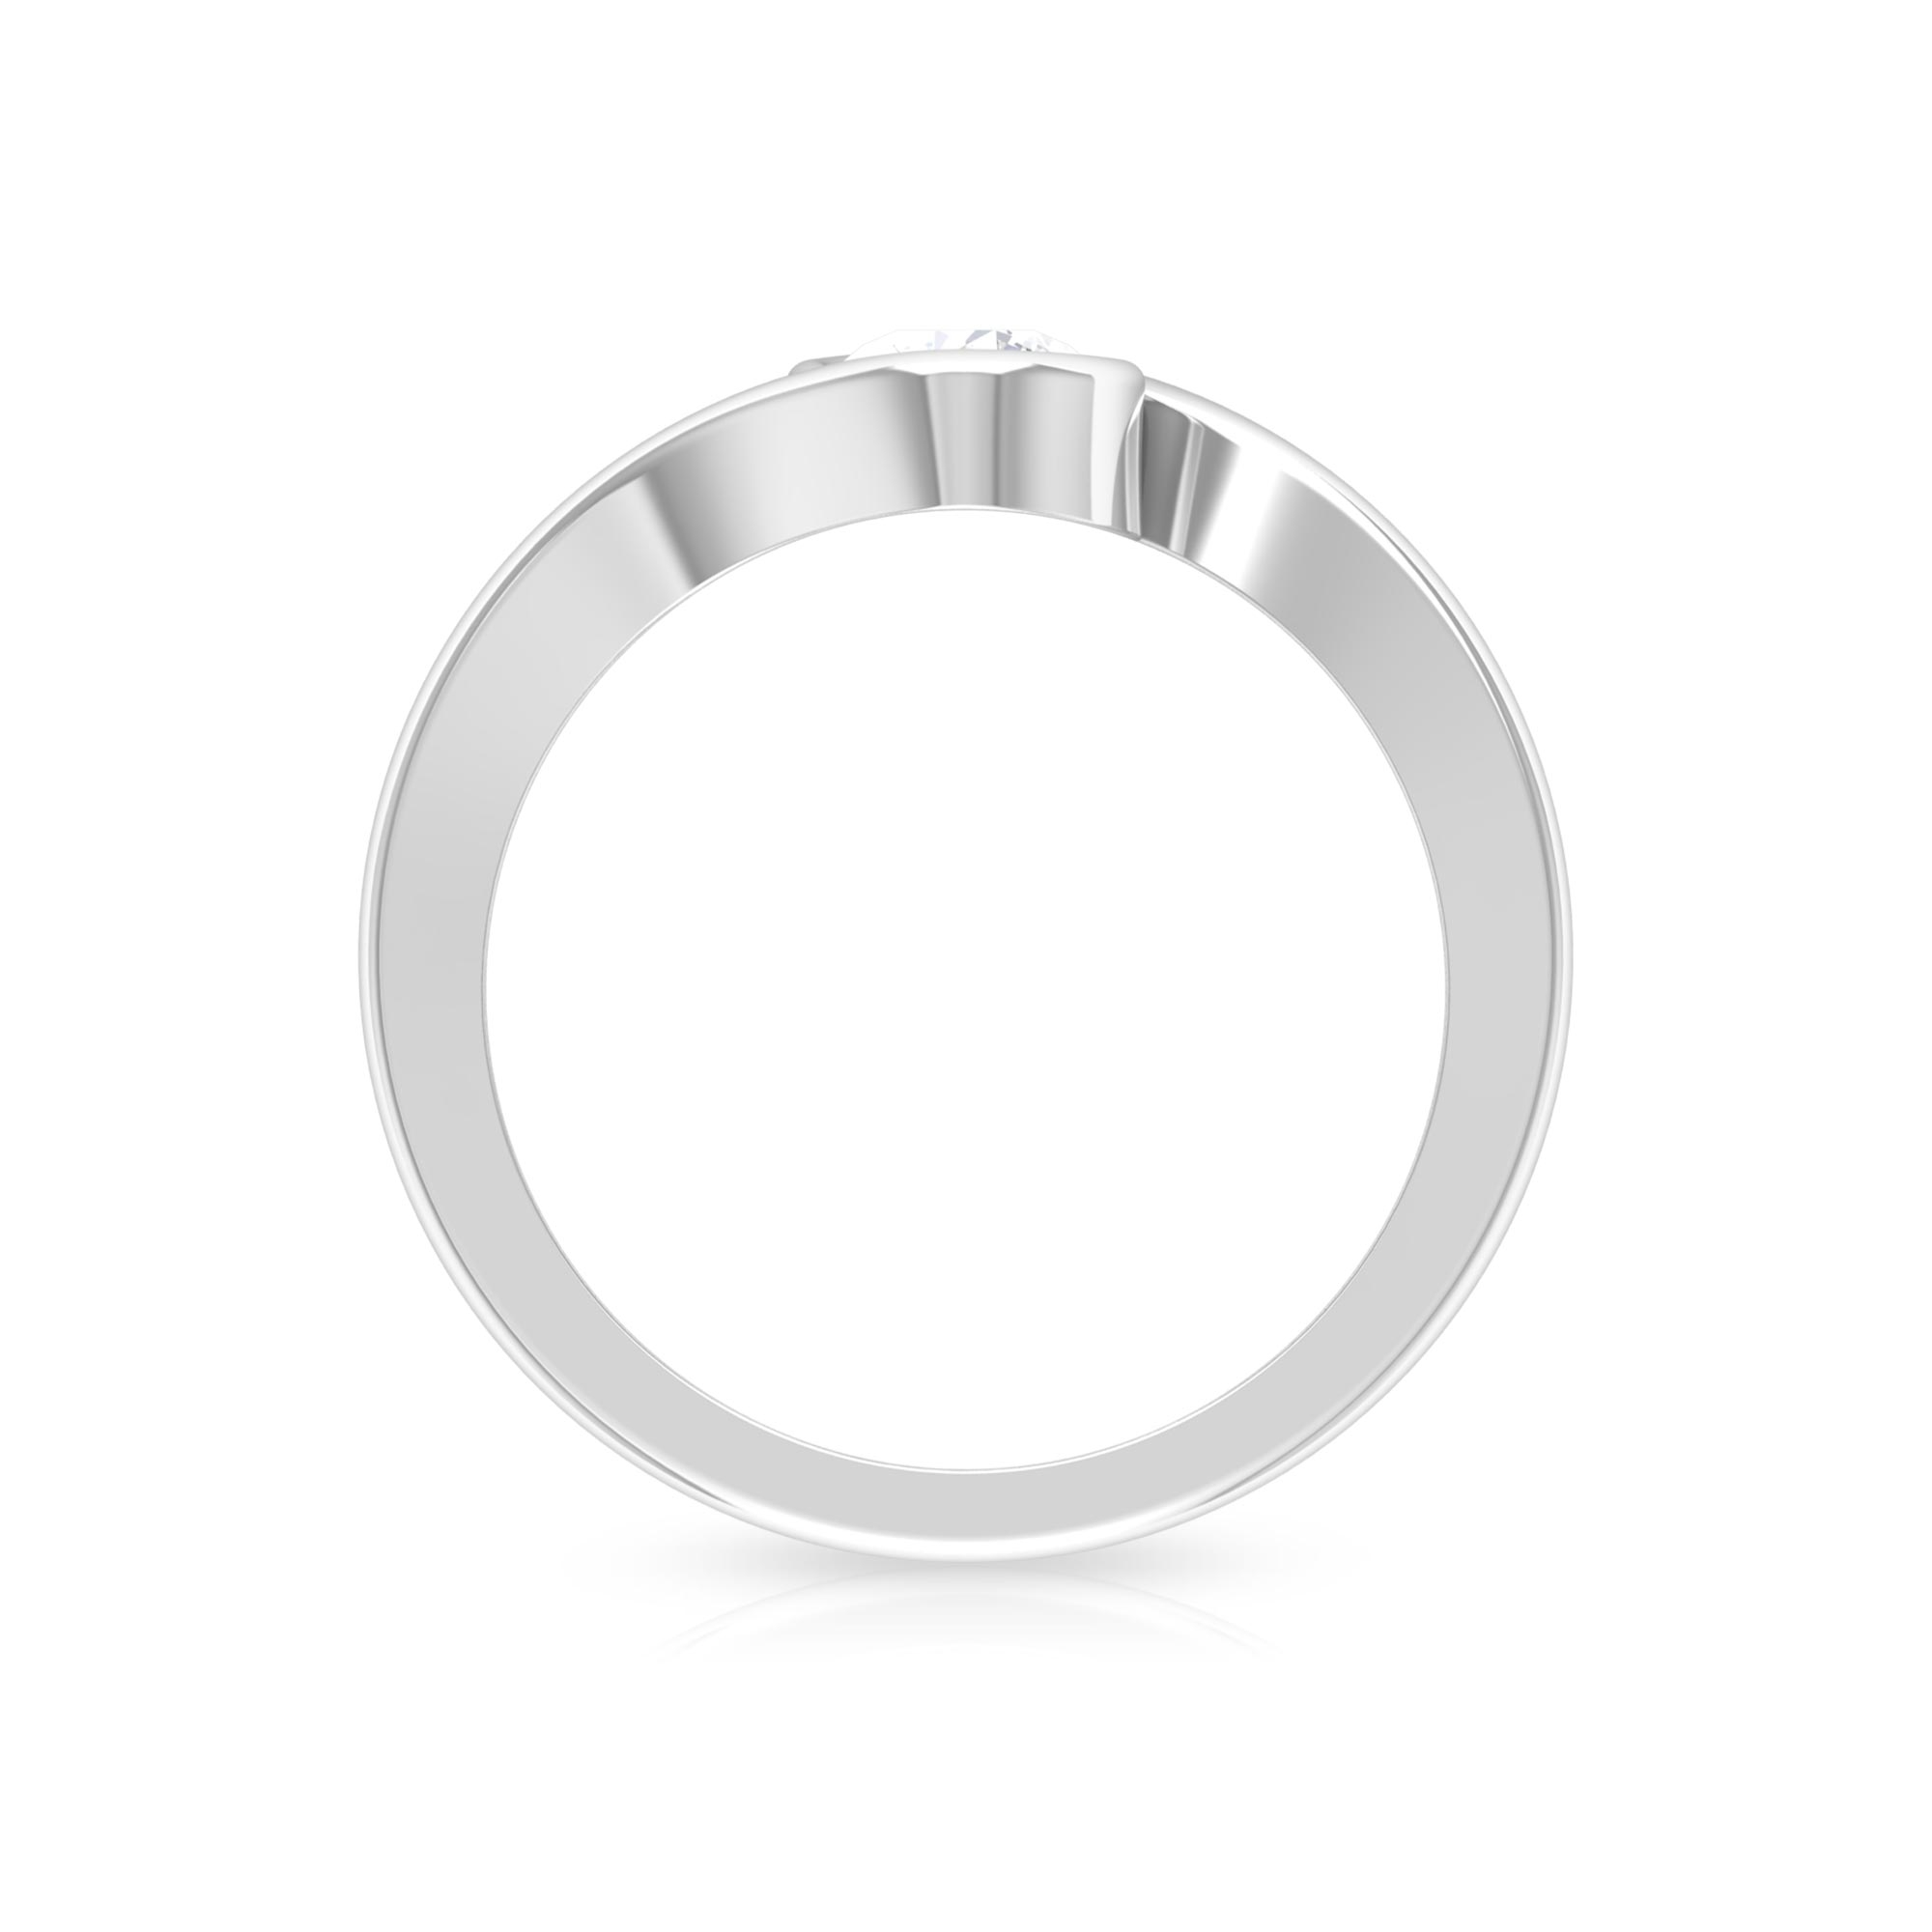 5 MM Round Cut Diamond Solitaire Ring in Bypass Setting